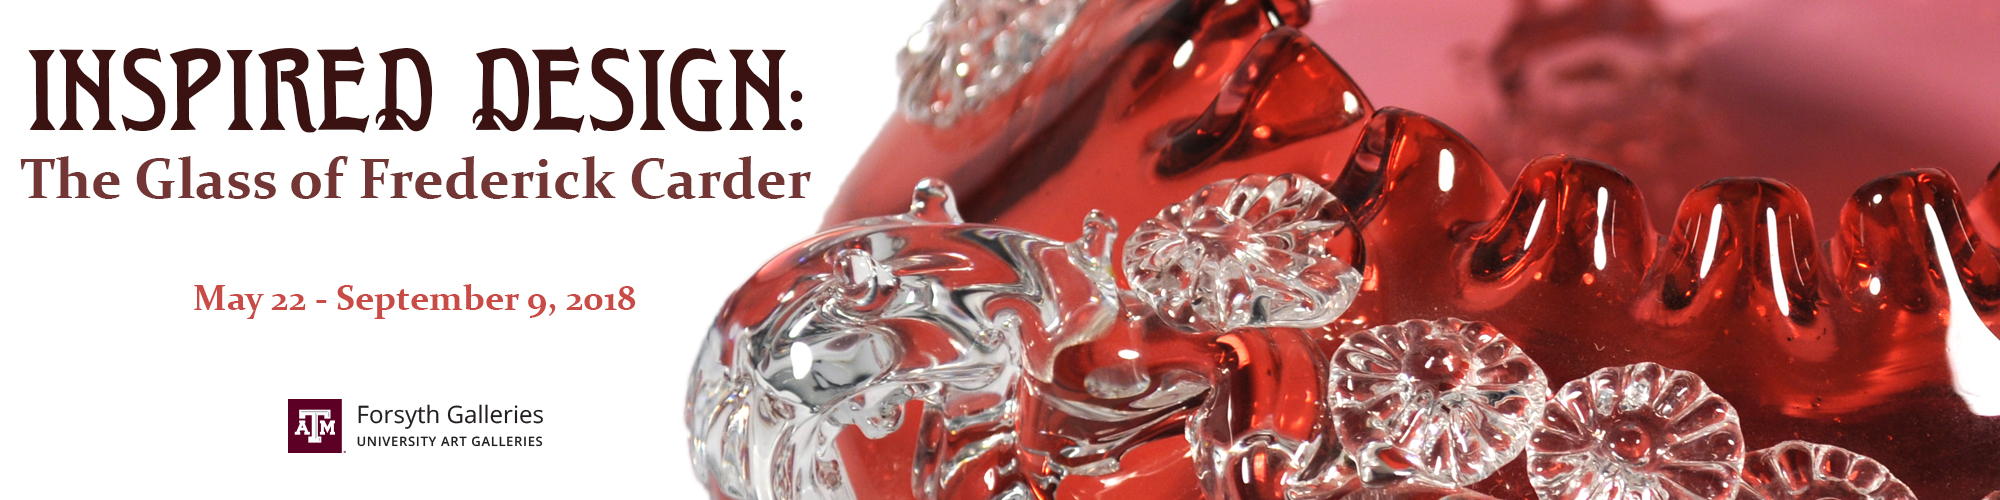 Inspired Design: The Glass of Frederick Carder